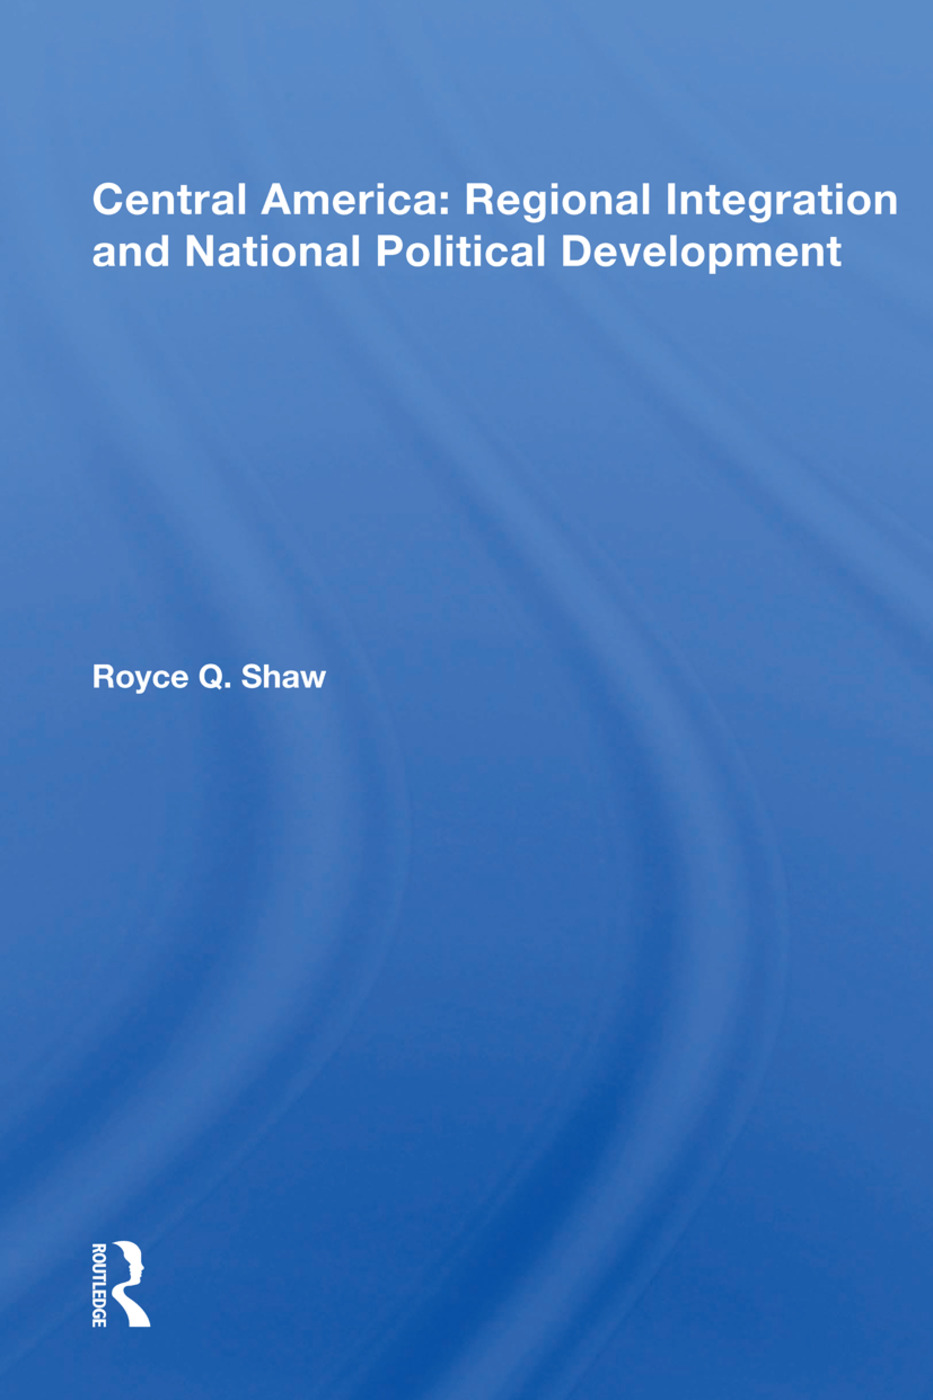 Central America: Regional Integration and National Political Development